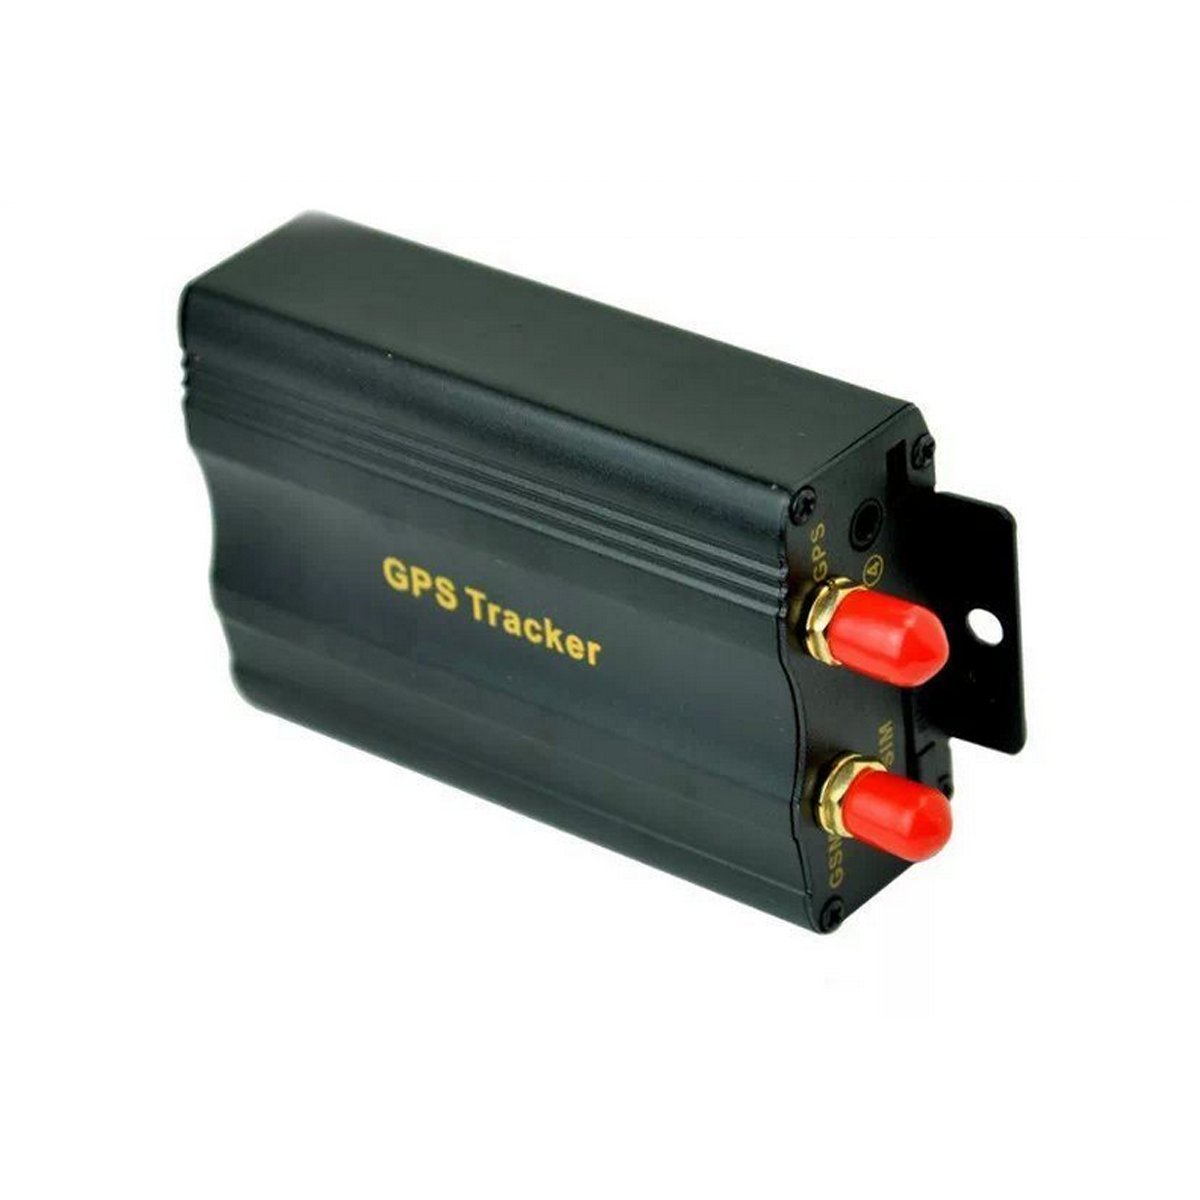 RedSun New GPS//SMS//GPRS Tracker TK103B Vehicle Tracking System With Remote Control 4347628842